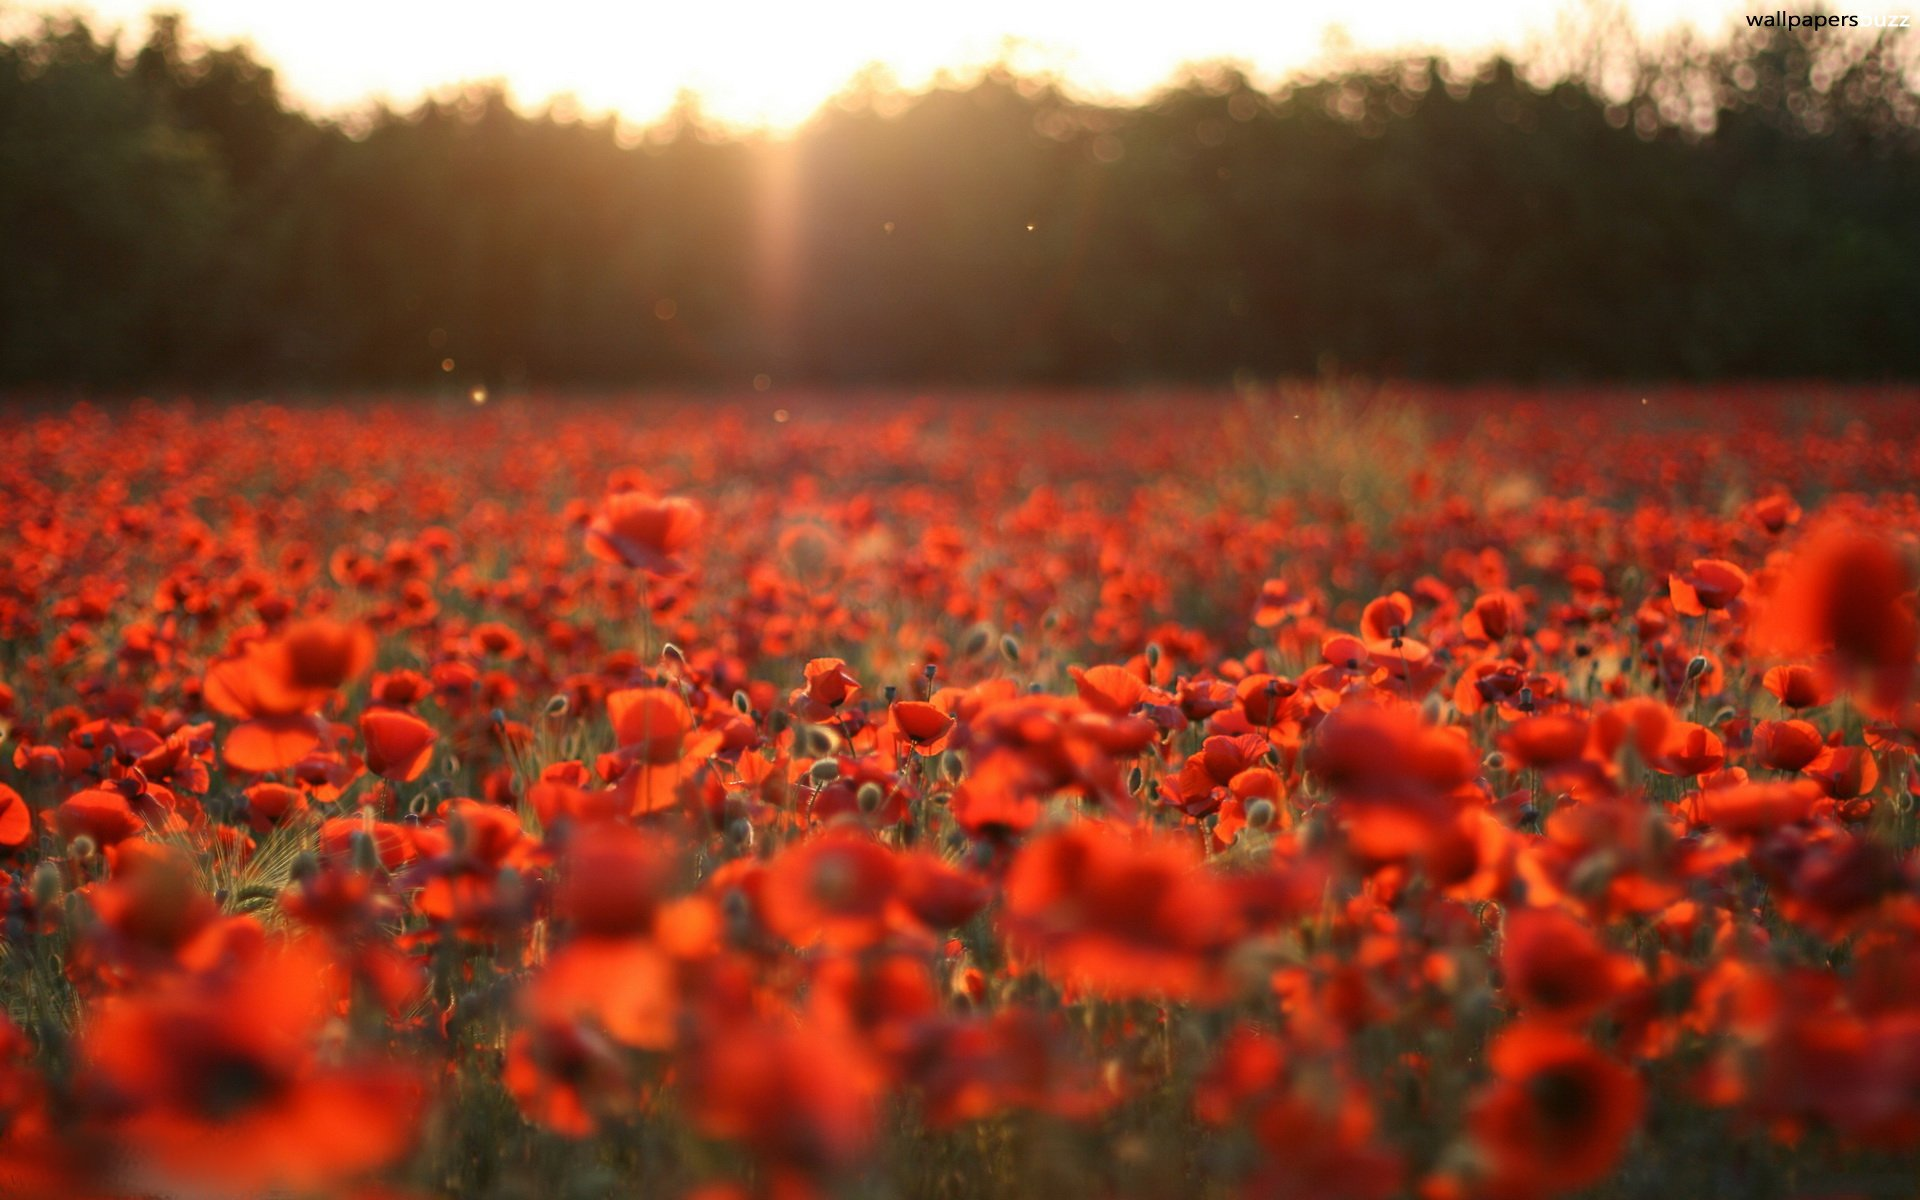 Red Poppy Wallpaper Next Red poppy seeds hd wallpapers